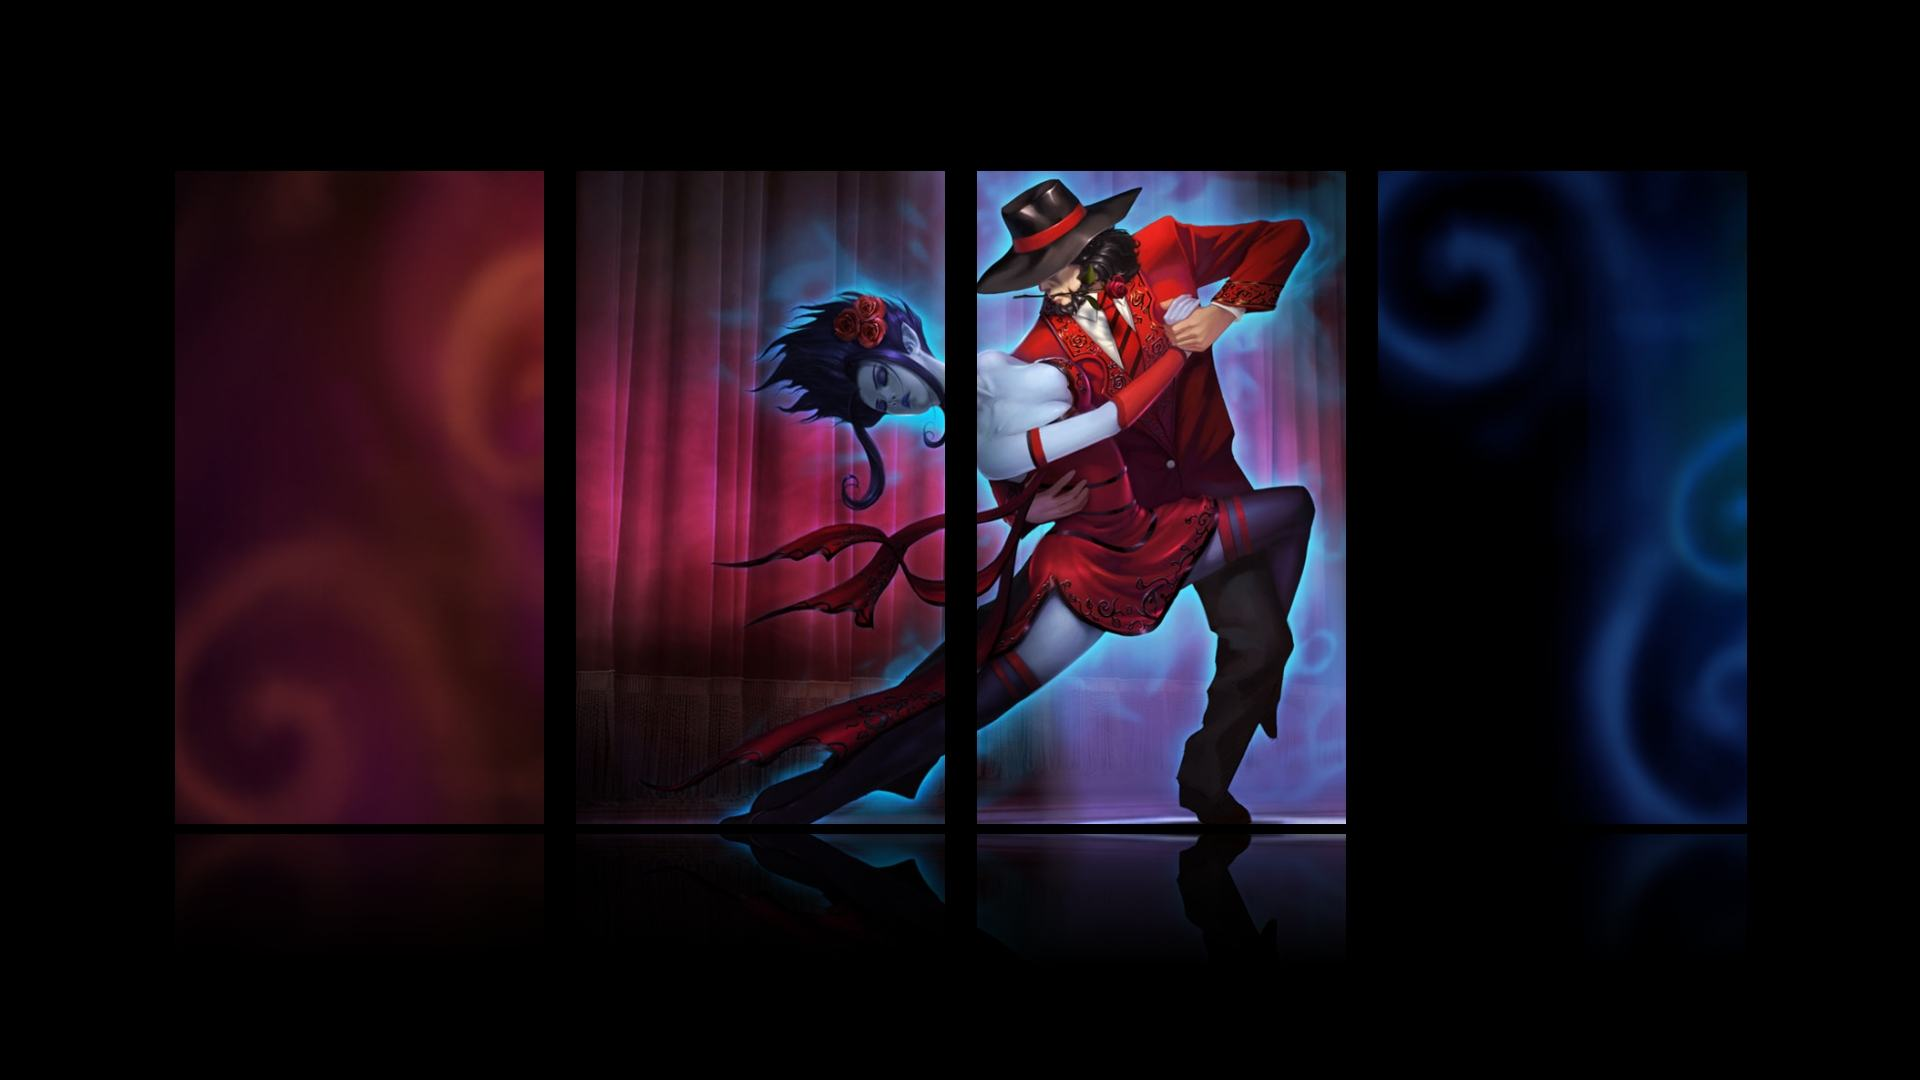 League Legends Wallpaper Twisted Fate Card Master HD Wallpapers 1920x1080